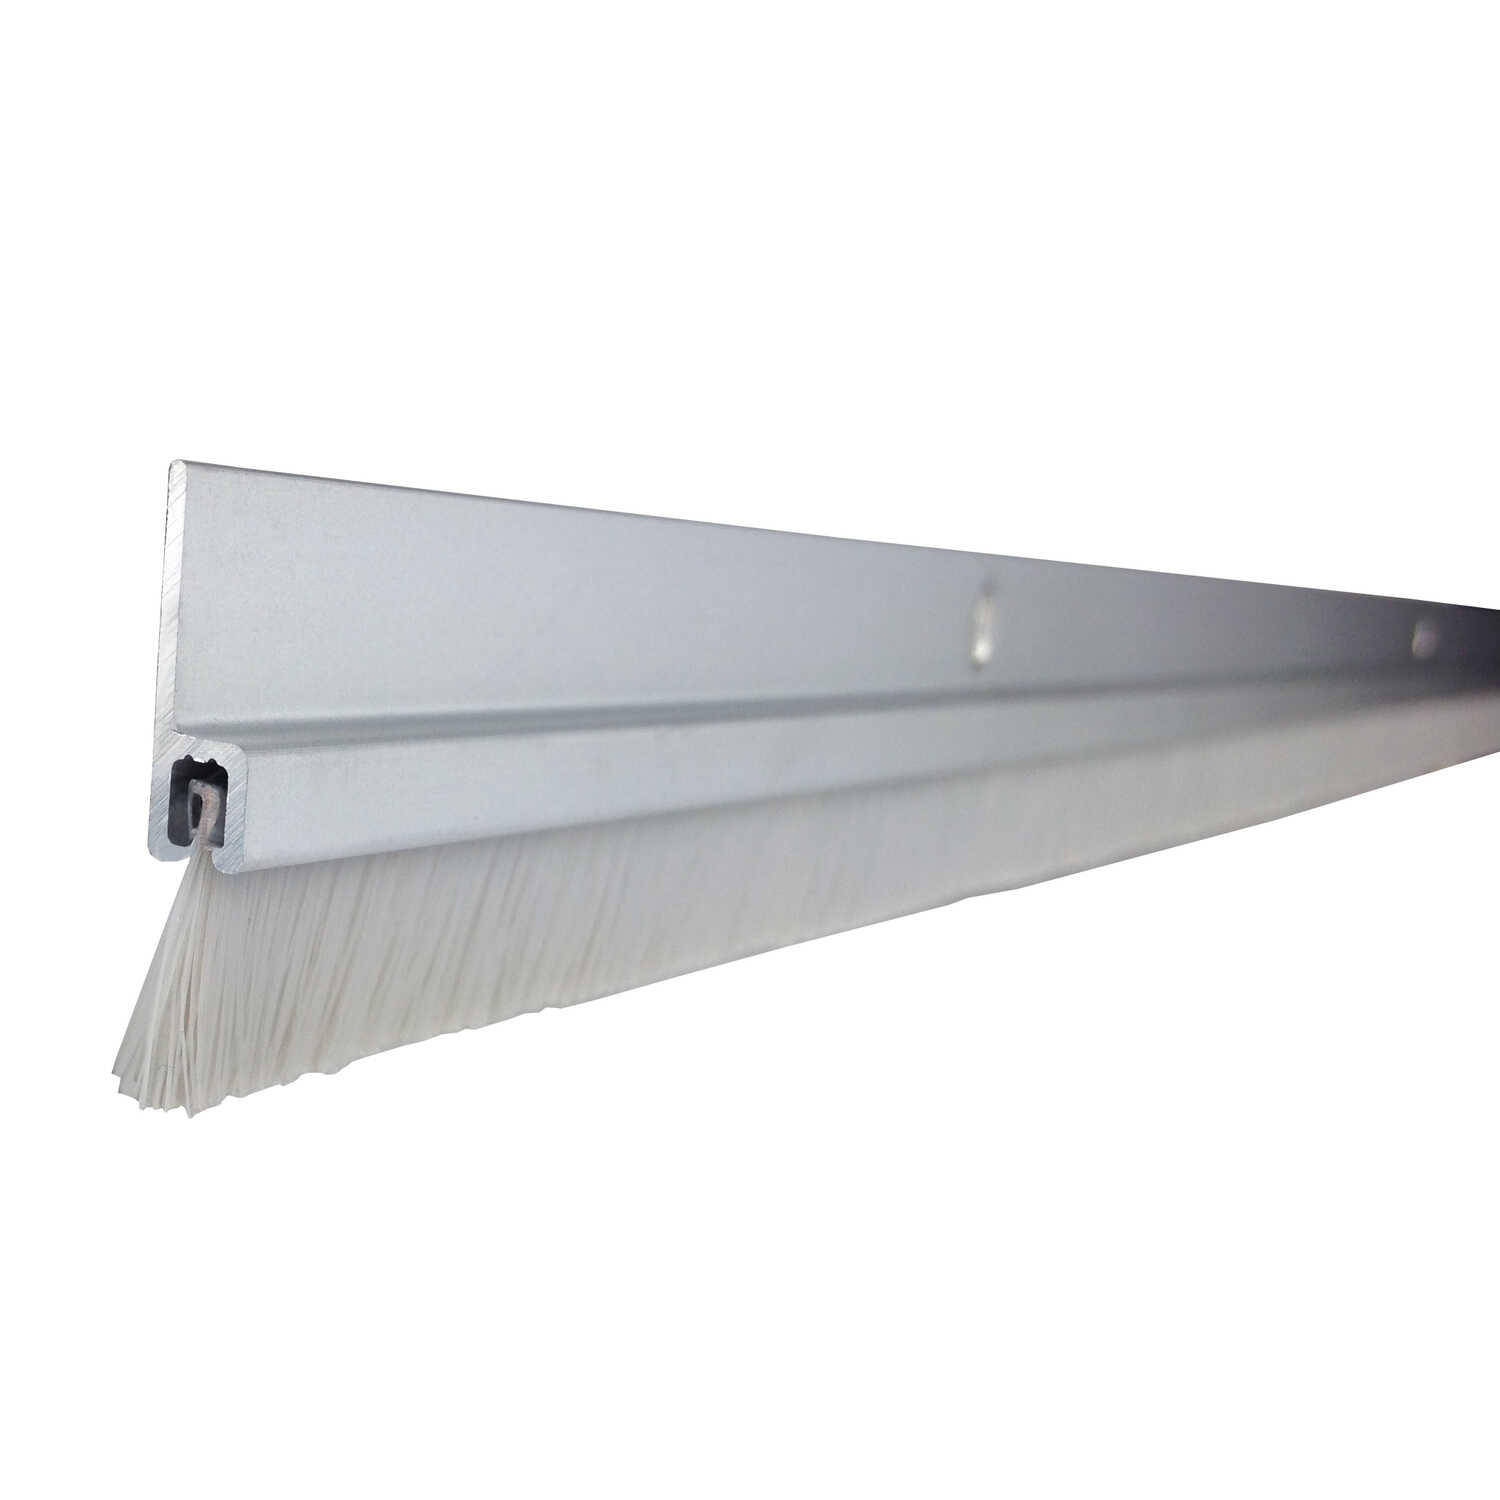 M-D Building Products  Silver  Aluminum  Door Sweep  For Door Bottom 3 ft. L x 1/8 in.